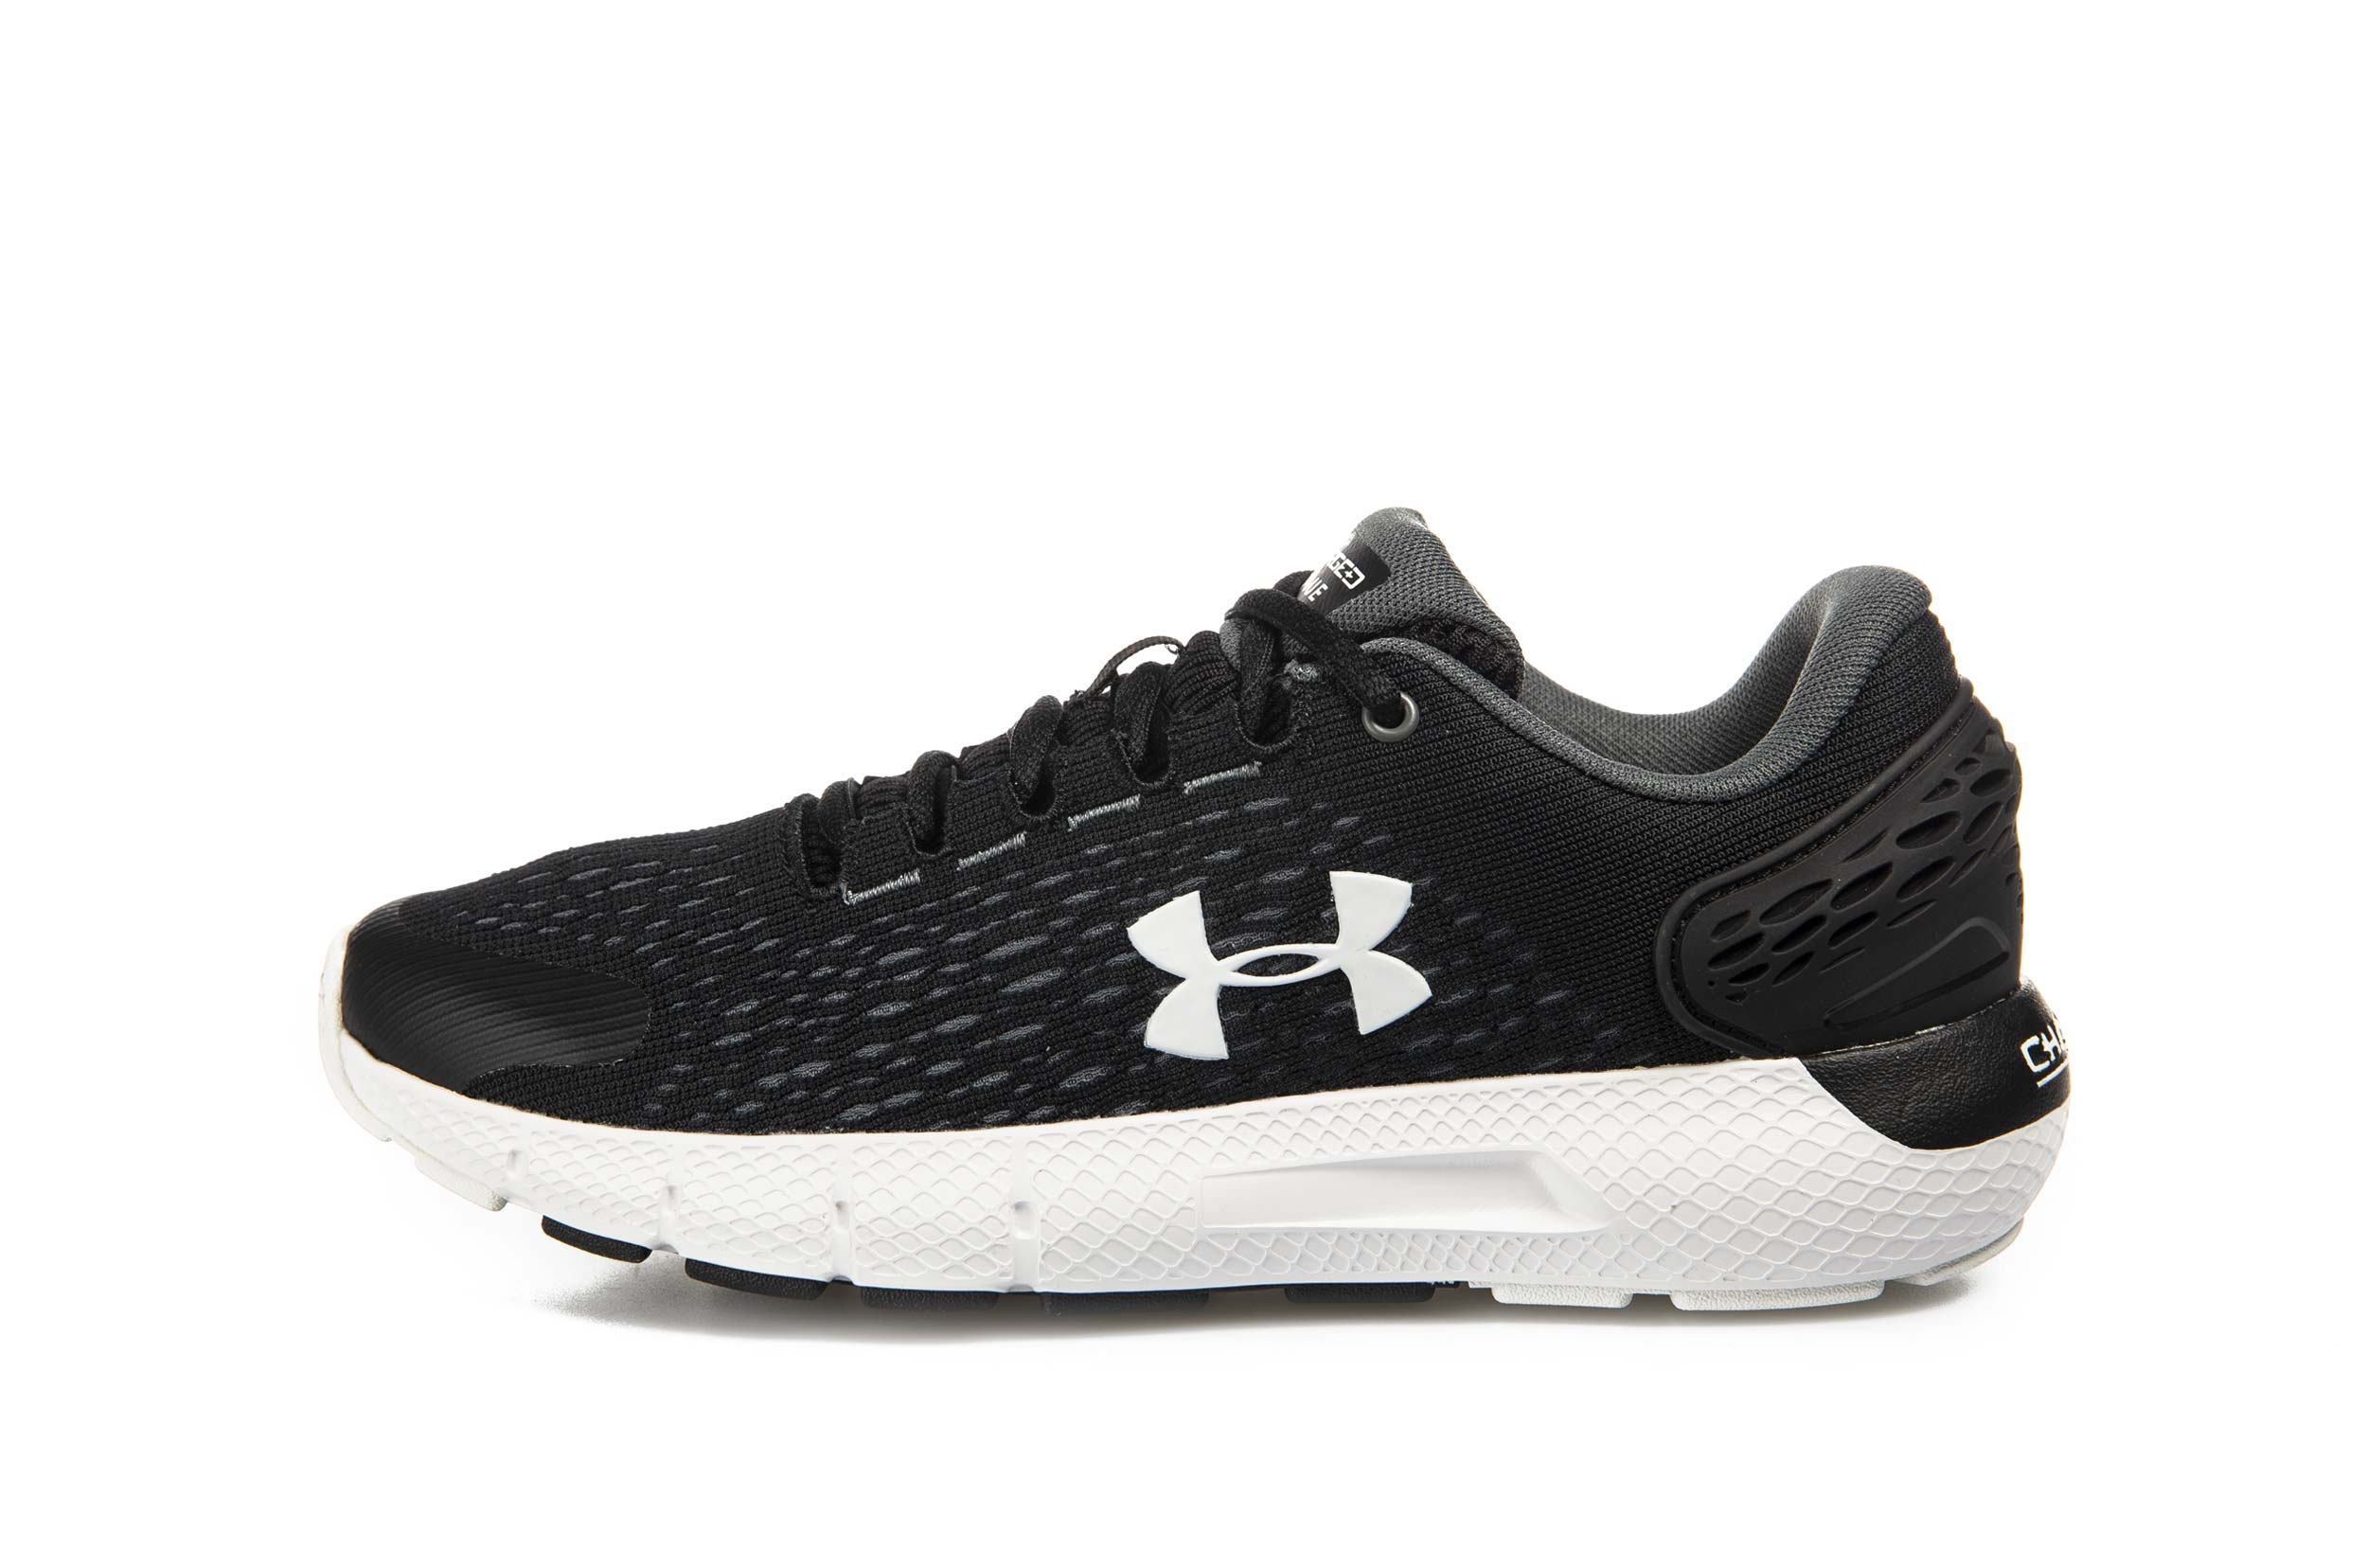 UNDER ARMOUR UA GS CHARGED ROGUE 2 3022868-001 Μαύρο